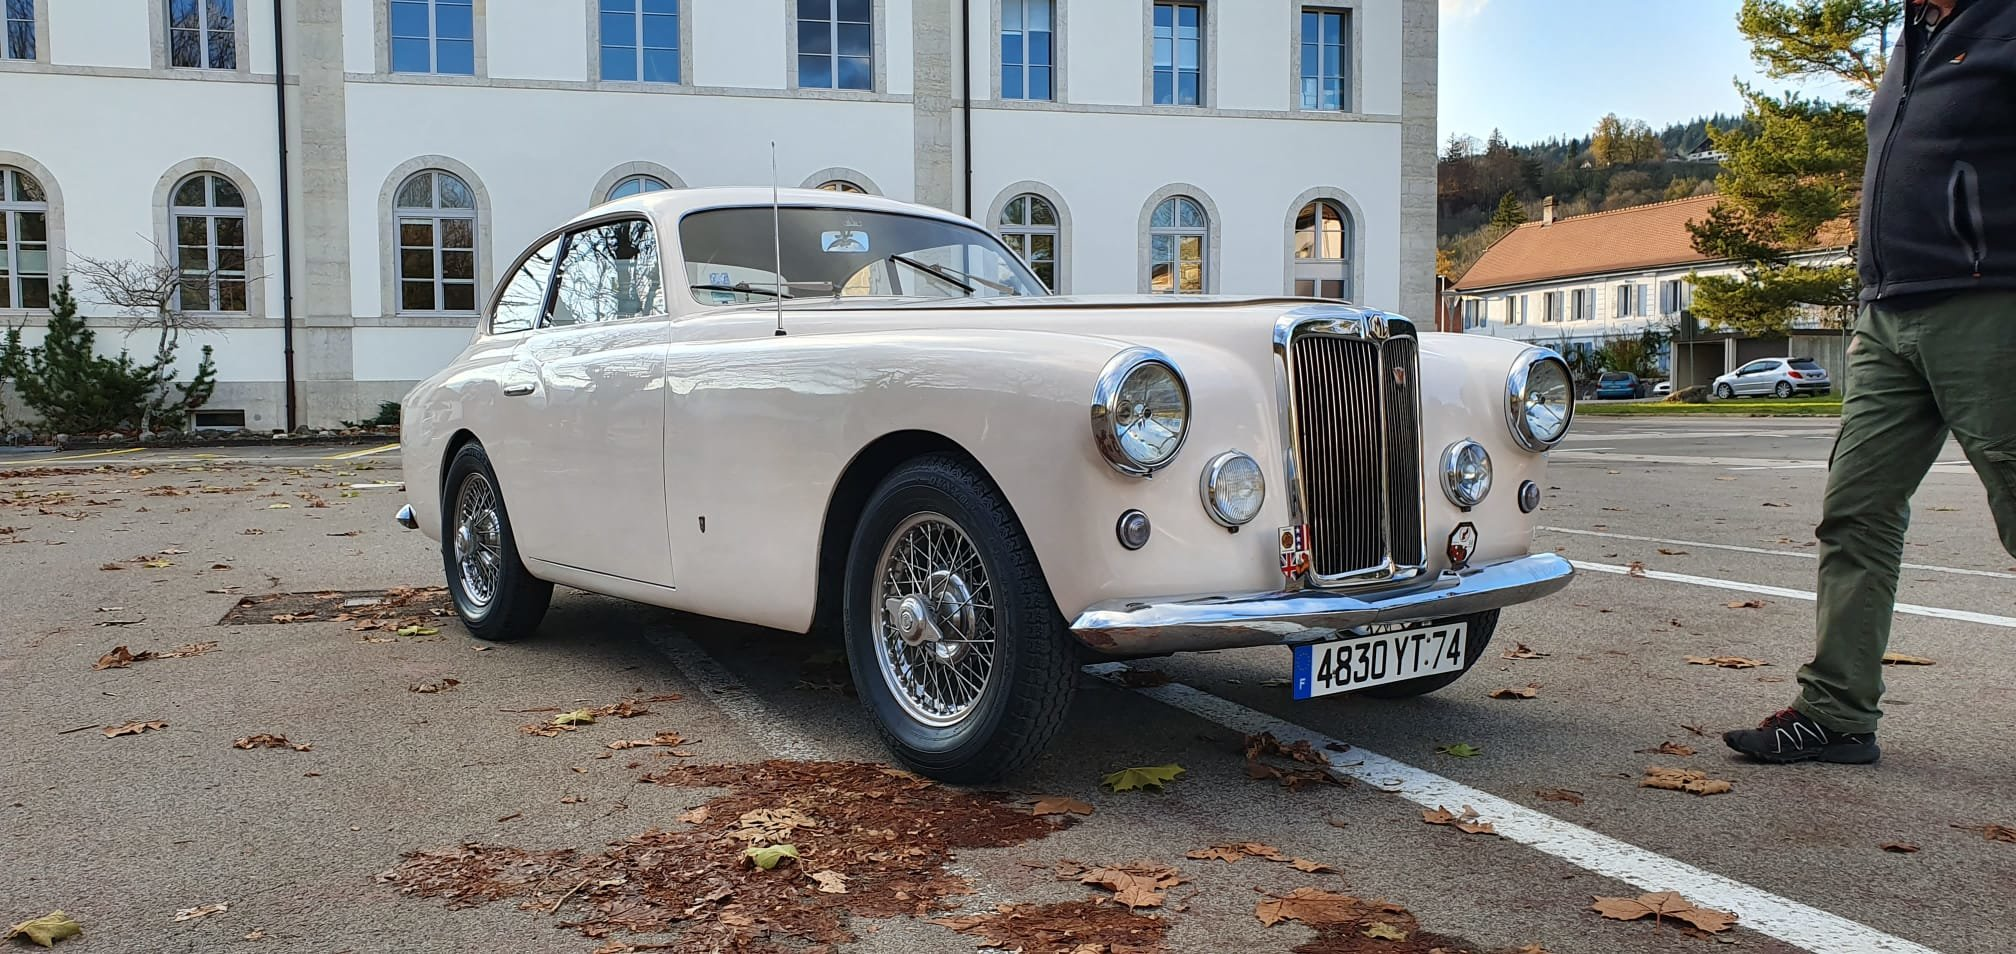 1953 Arnolt-MG Coupe For Sale (picture 3 of 6)